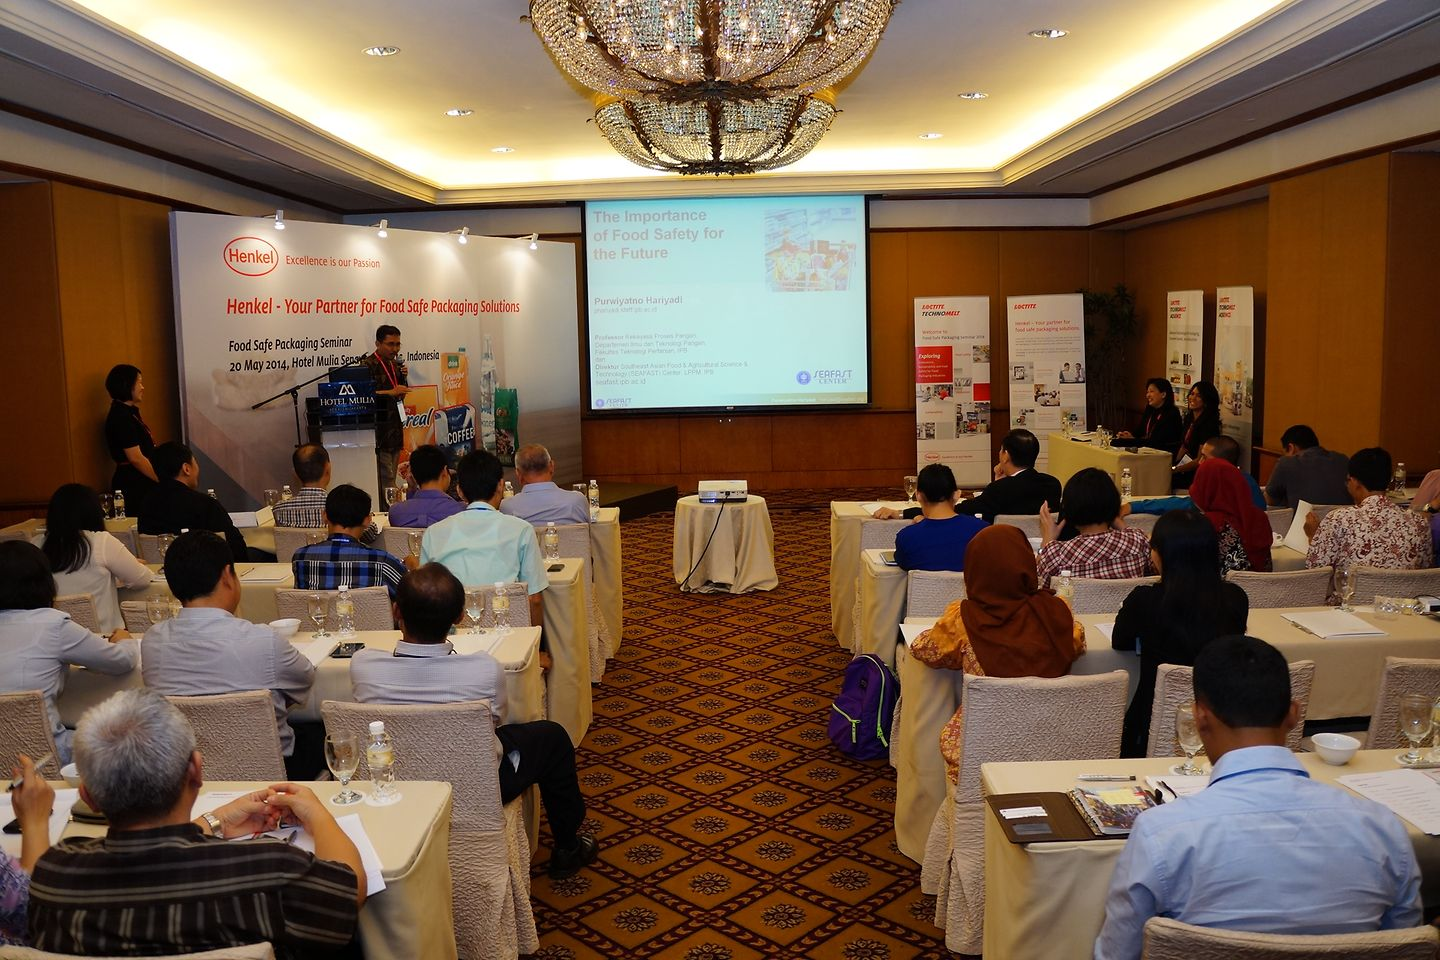 Two Food Safe Packaging Forums took place in Indonesia.